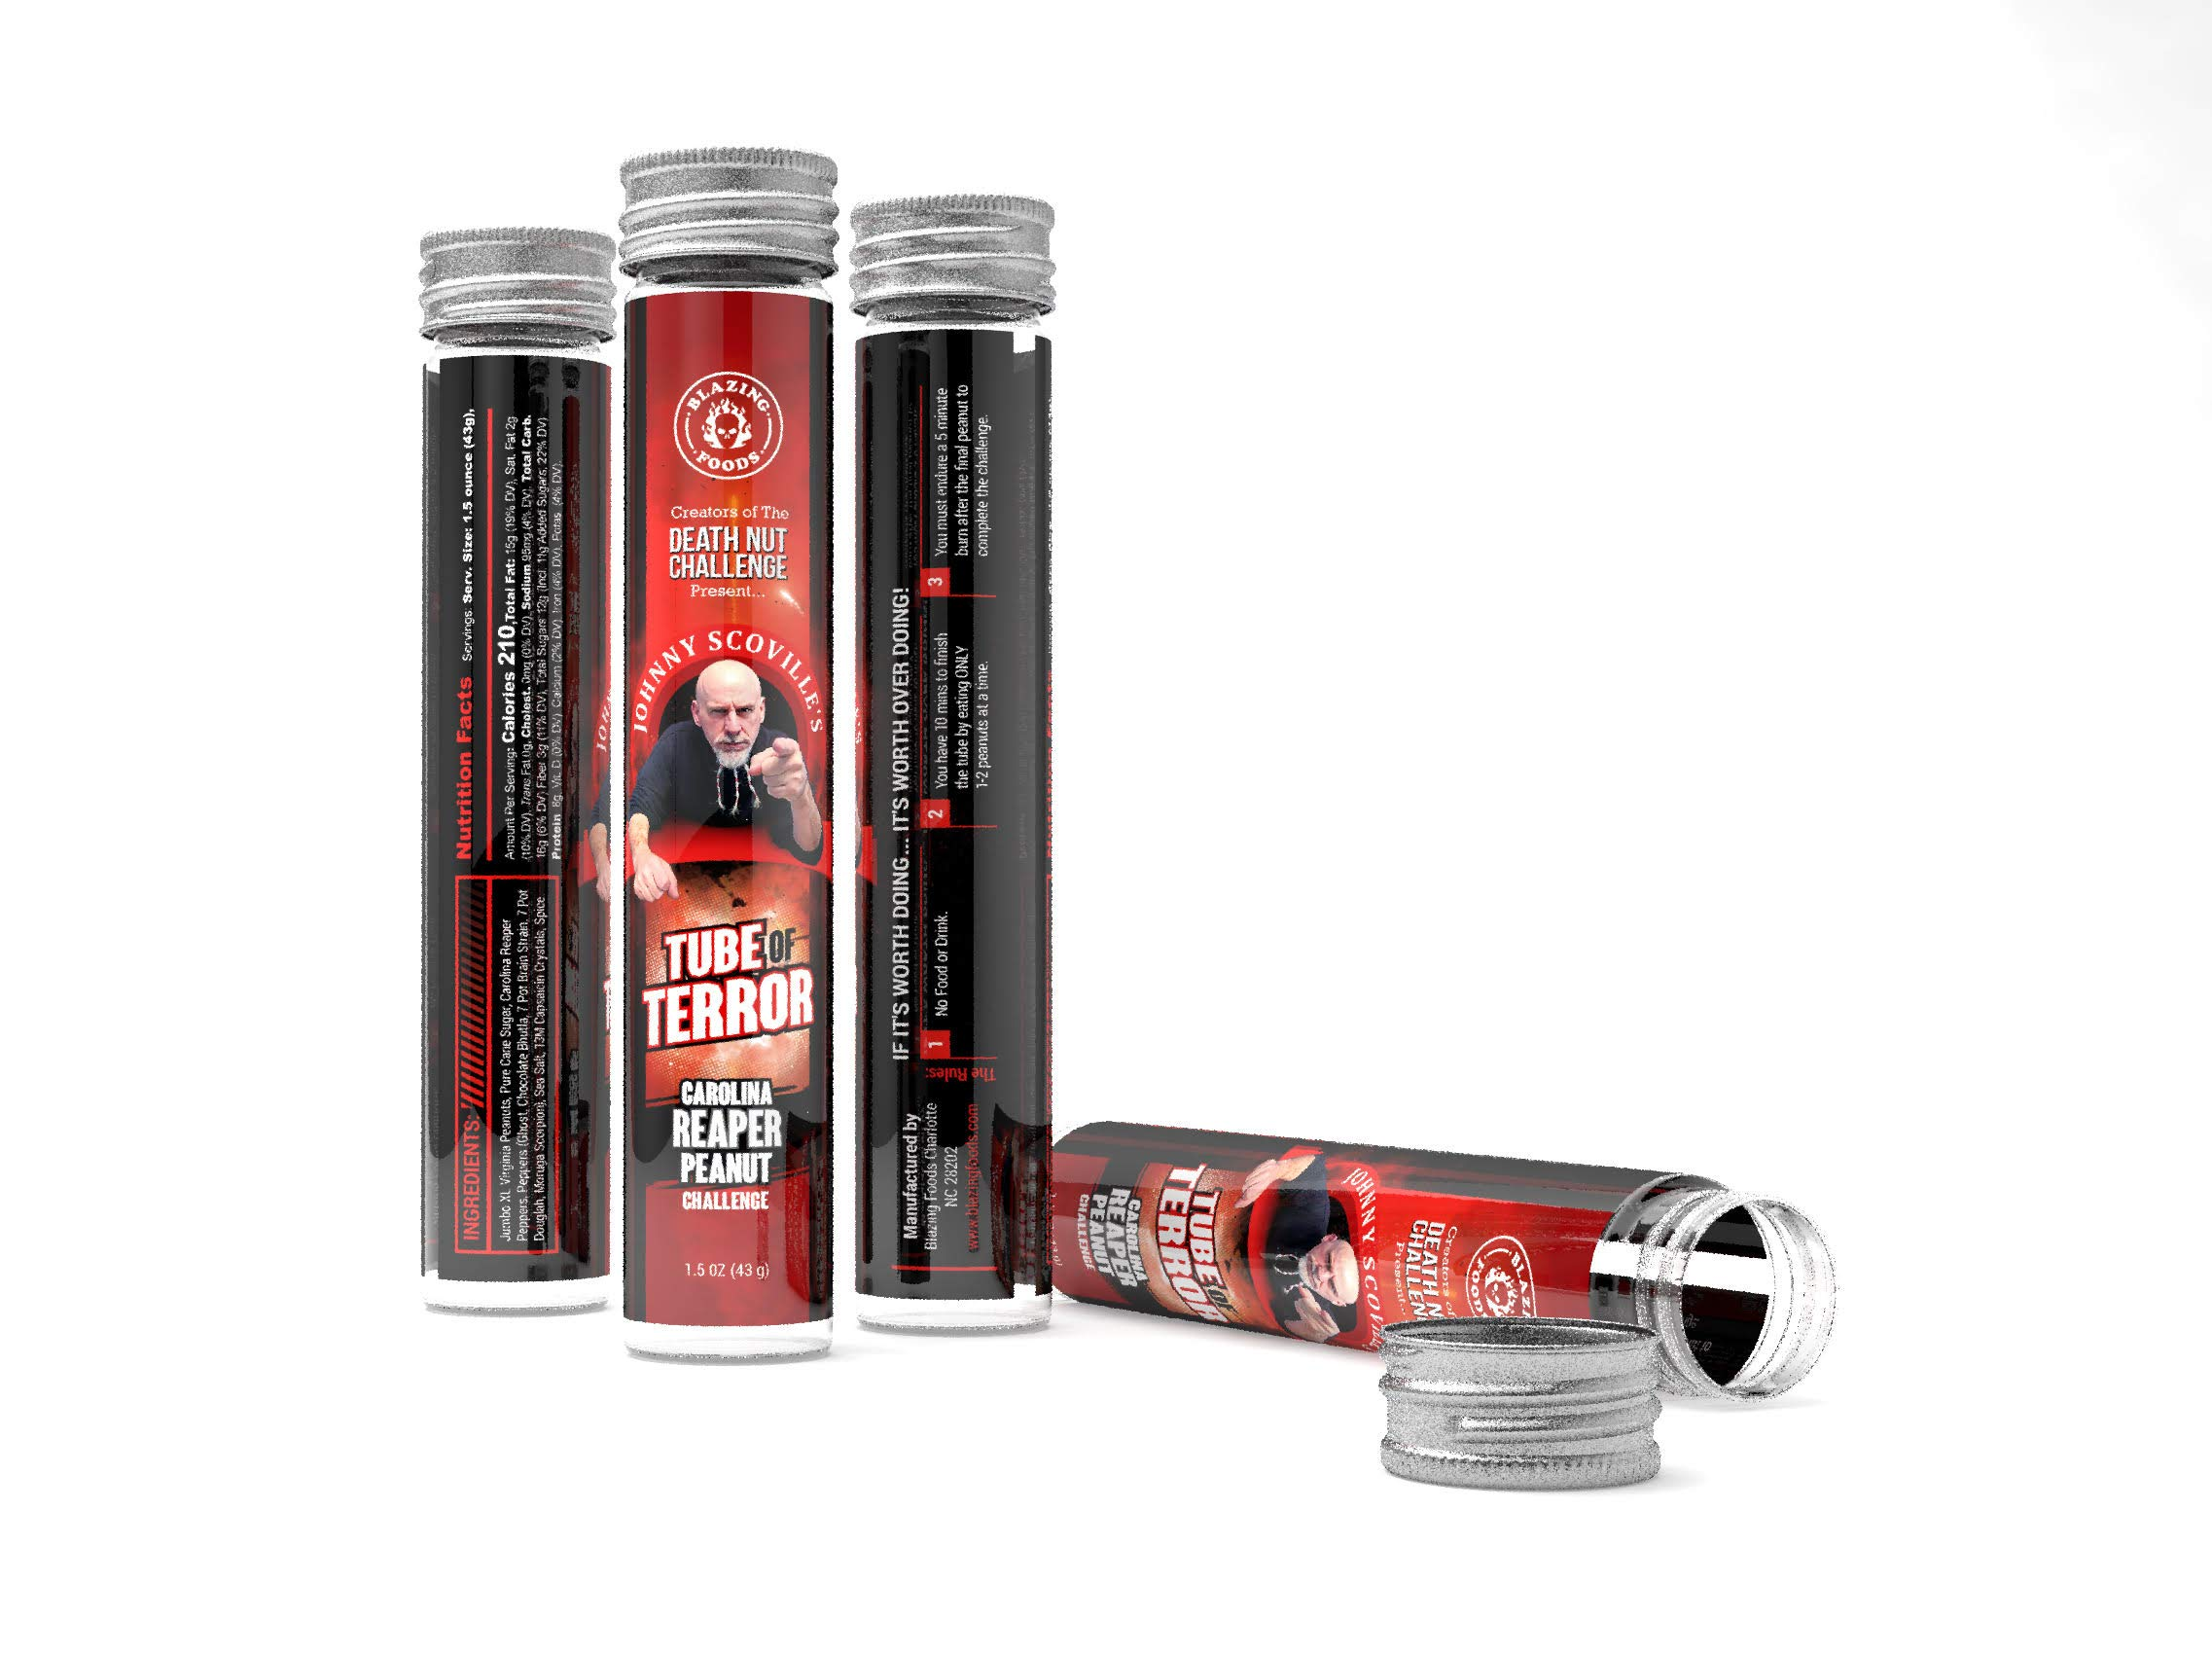 Tube of Terror Challenge - verified hottest Carolina Reaper, Ghost & Scorpion Pepper peanuts on planet earth by BLAZING FOODS